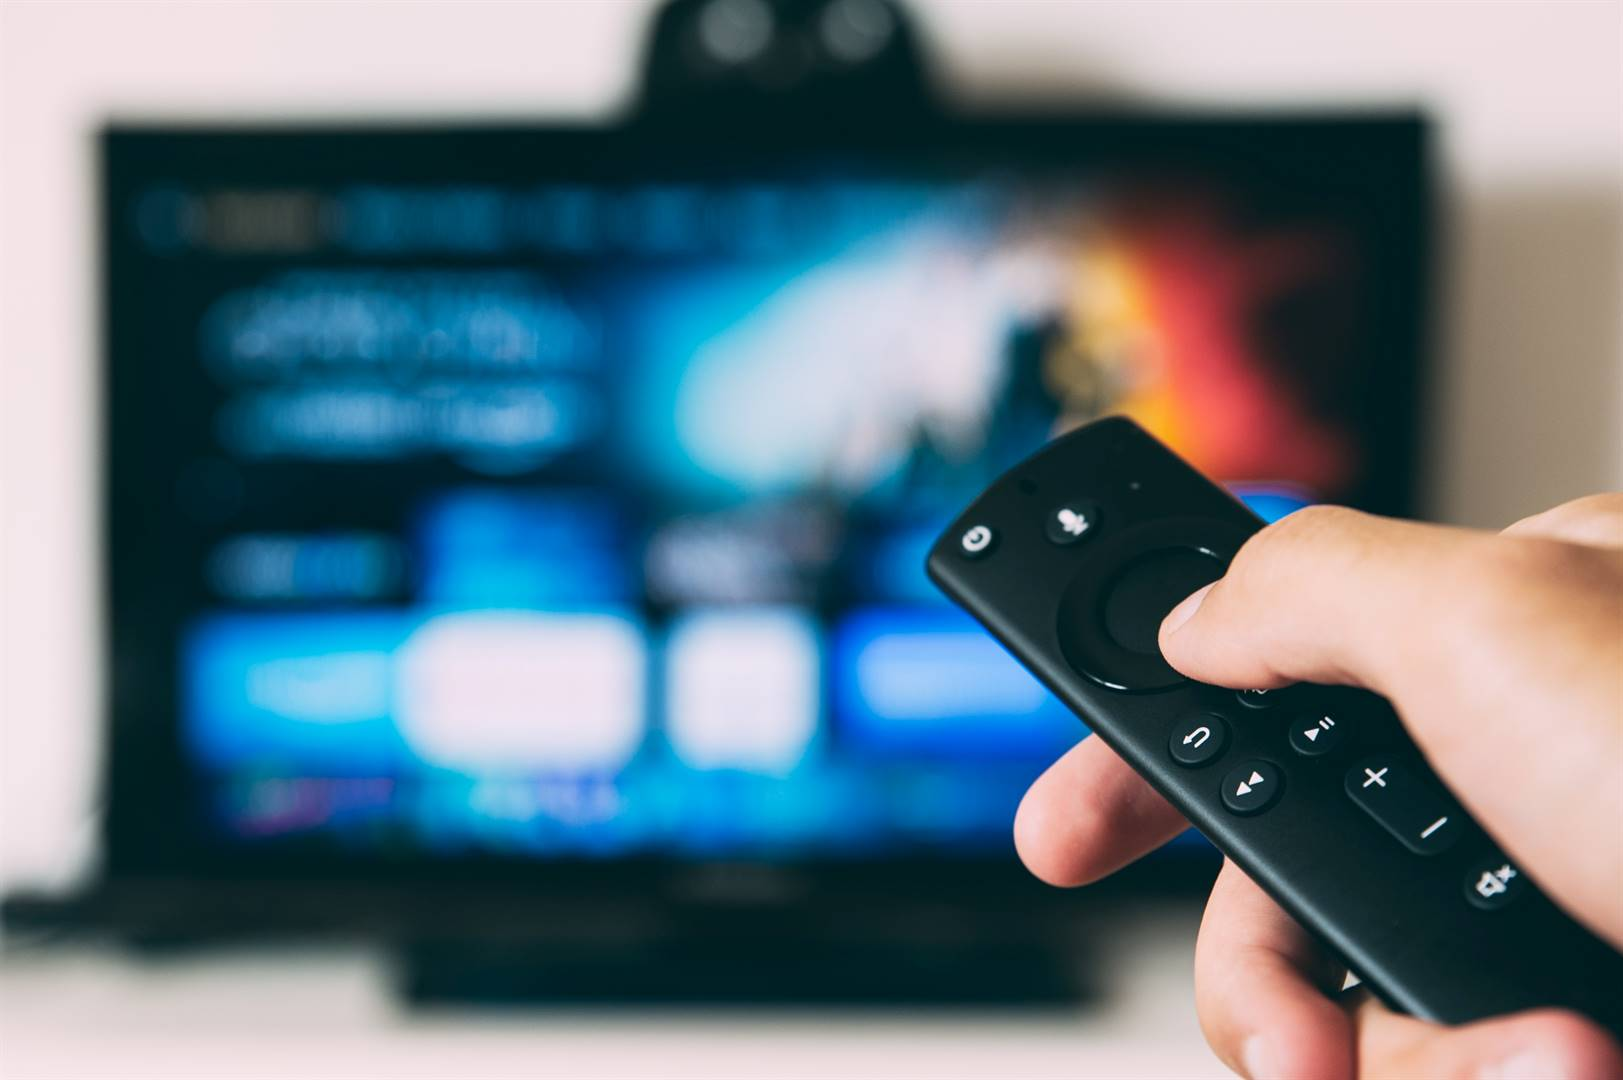 As people were forced to stay at home during lockdown, MultiChoice saw a surge in subscriber numbers.